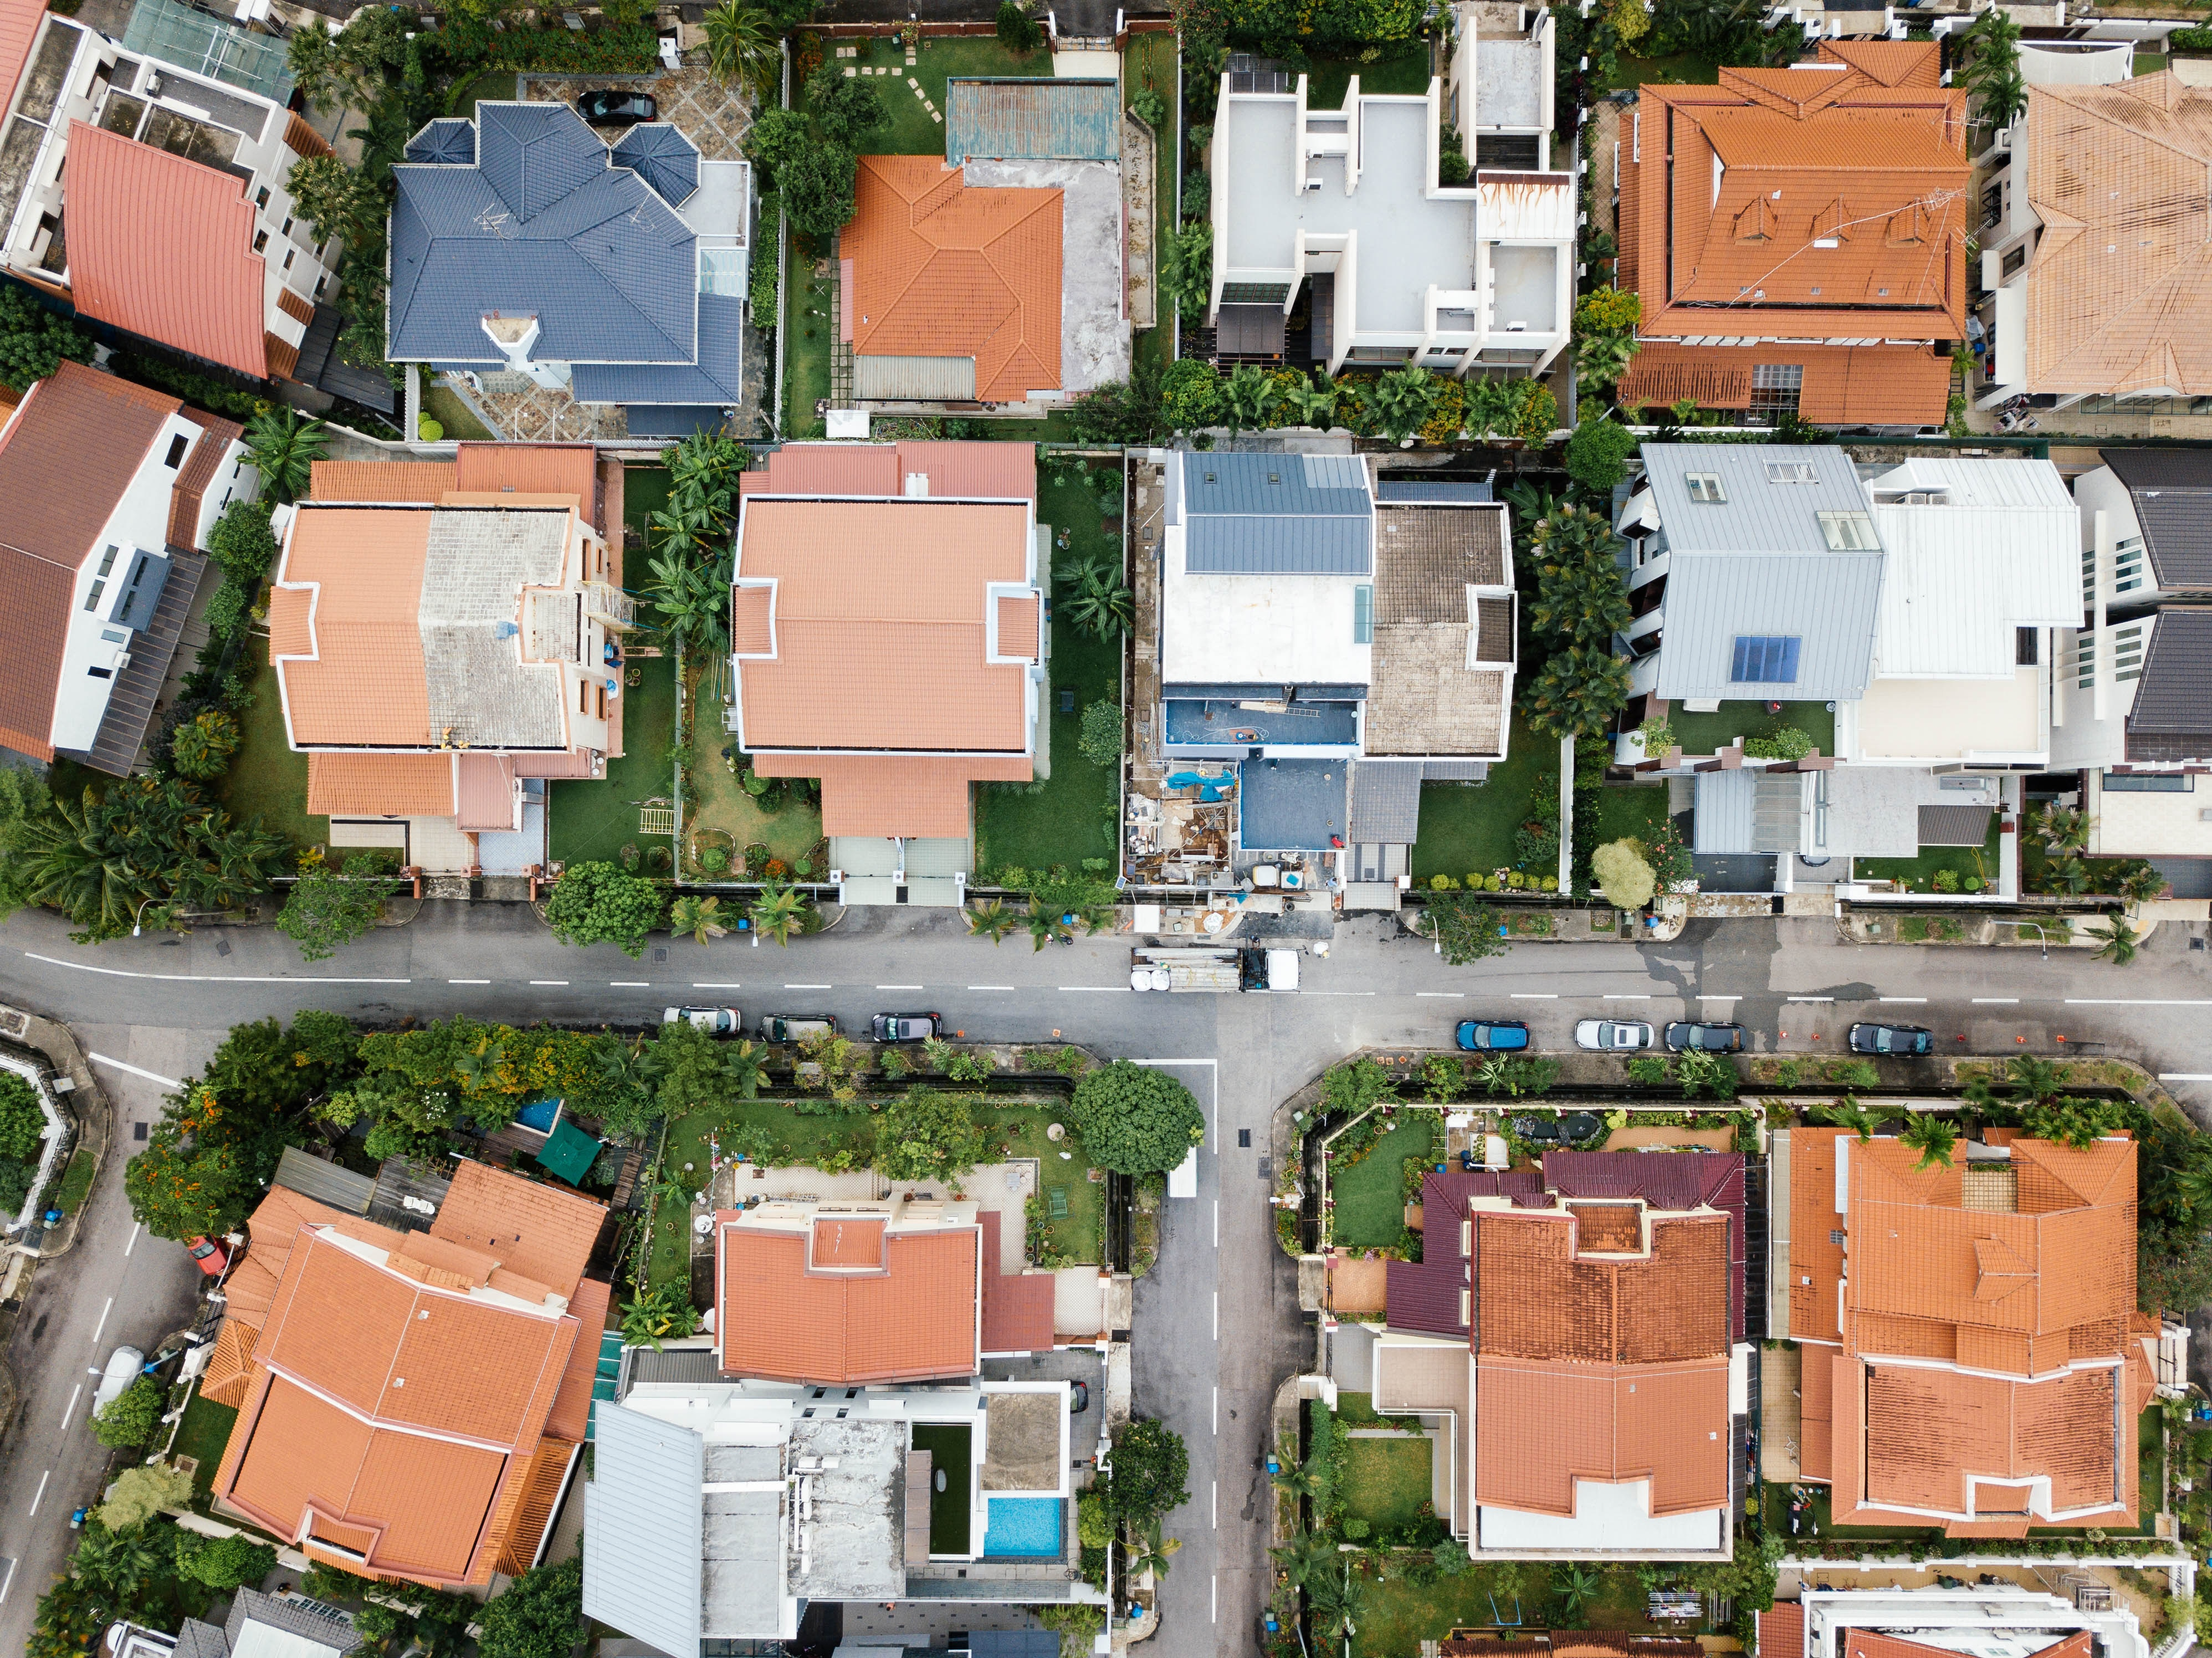 The real estate industry has avoided software disruption - until now